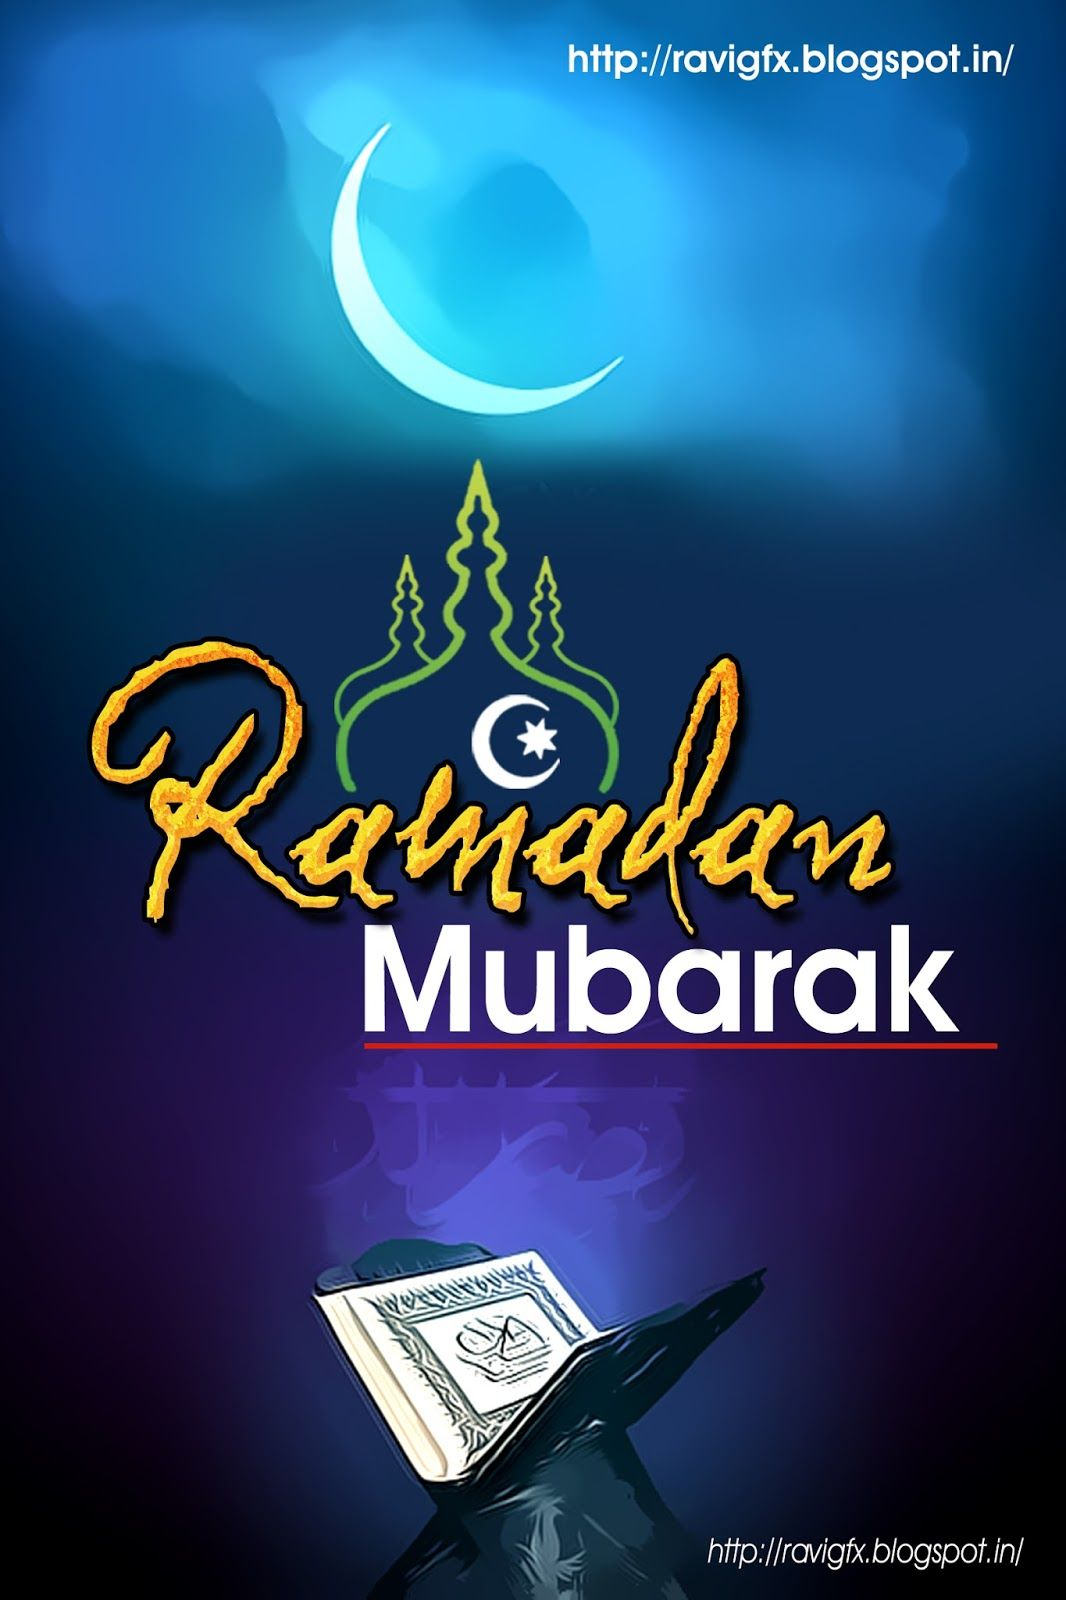 Happy ramadan telugu quotes wishes greetings sms images hd telugu ramadan 2017 wishes pictures images hd wallpapers telugu ramzan quotes and messages about fasting for ramadan the ramadan gree kristyandbryce Choice Image